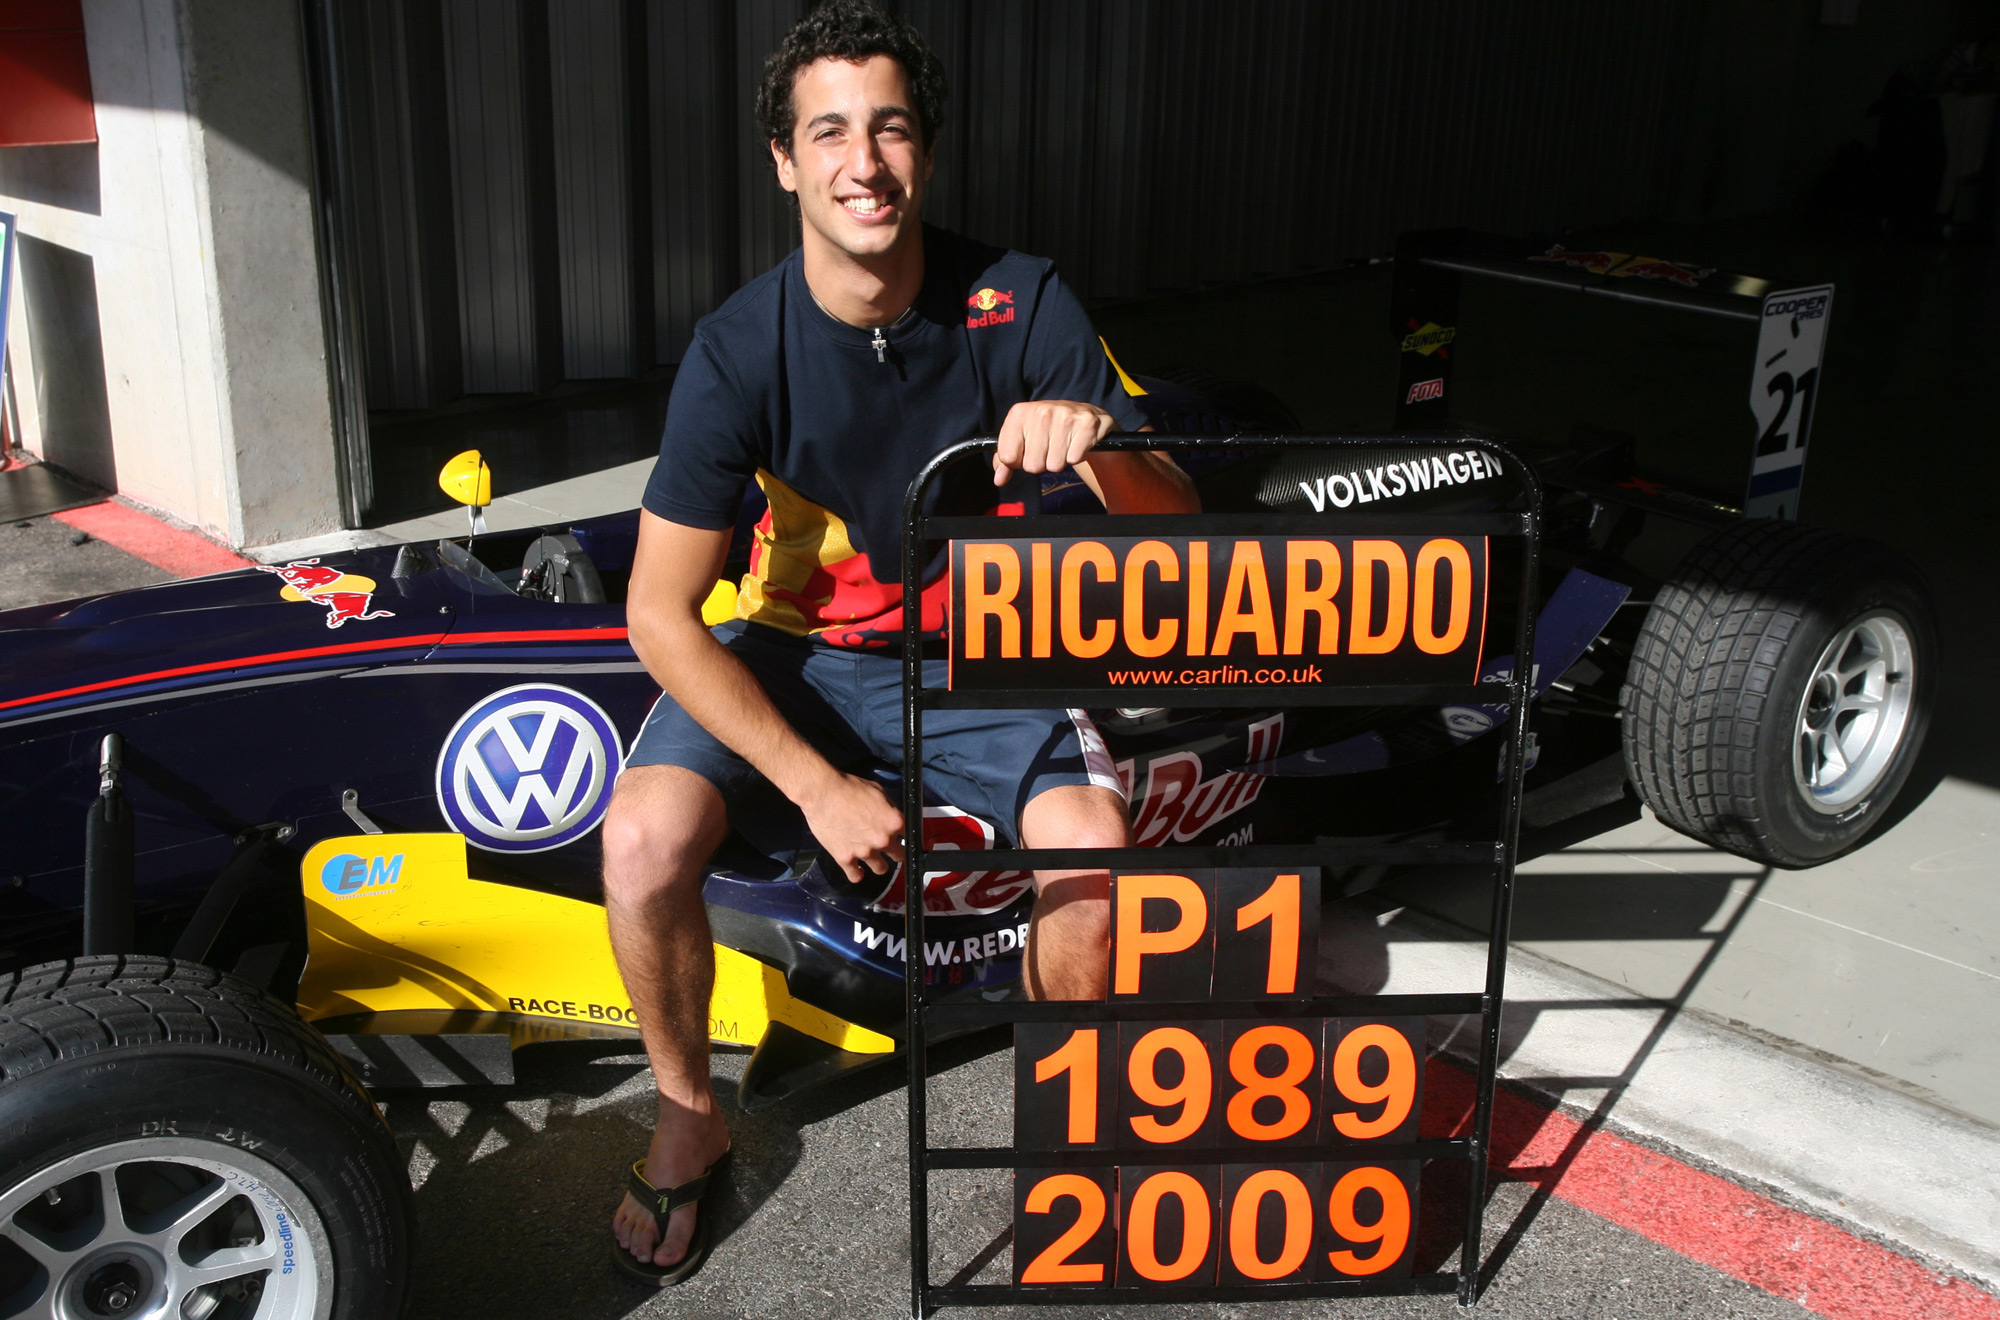 ricciardo-british-f3-champion-portugal-algarve-13-9-2009